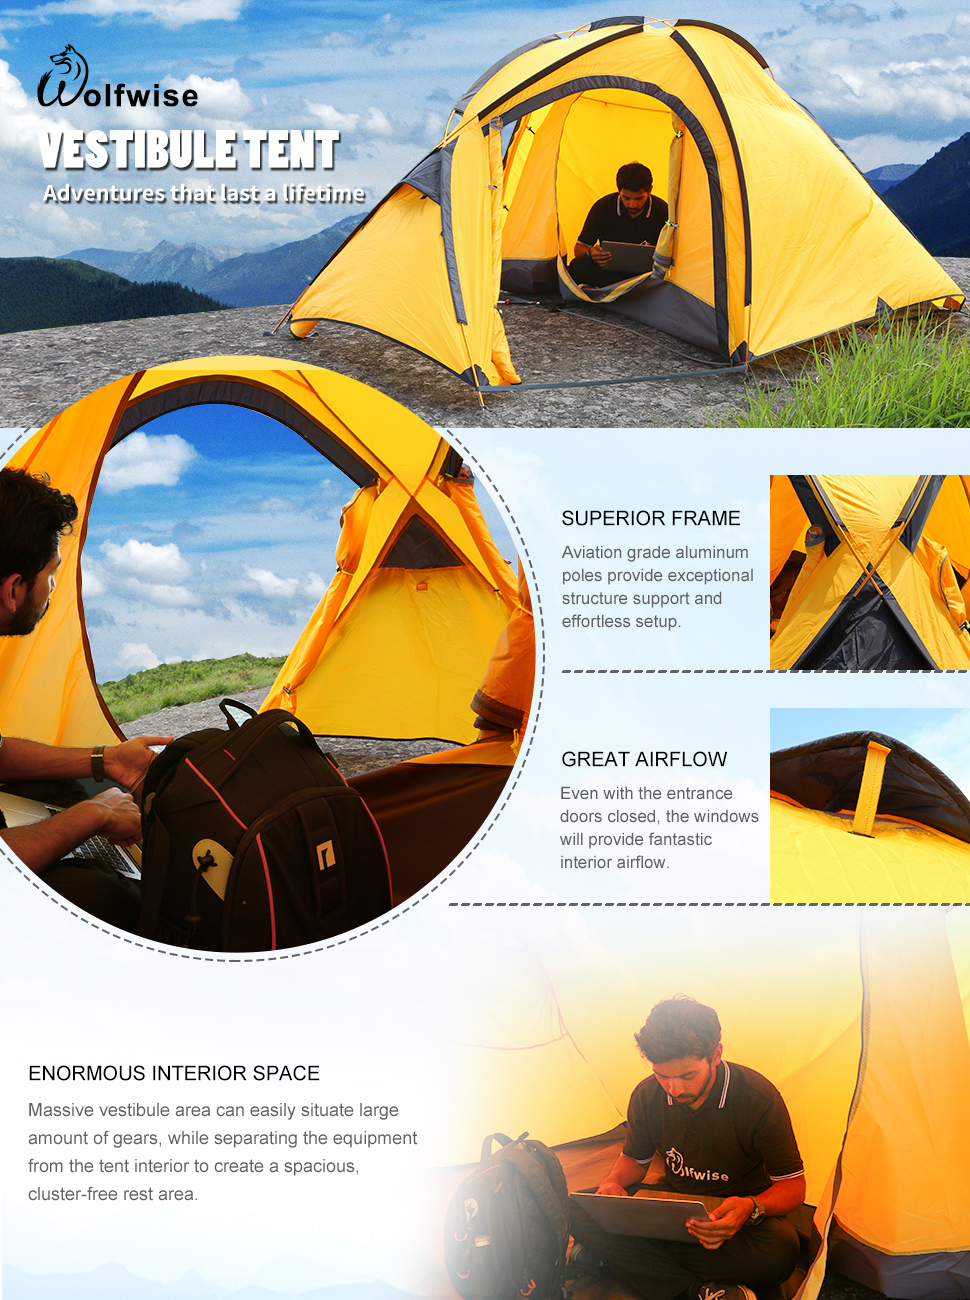 WolfWise 4 Person Large Family Tent Backpacking Tent Sun Shelter Sunshade for C&ing Travel Adventure & Amazon.com : WolfWise 4 Person Large Family Tent Waterproof ...